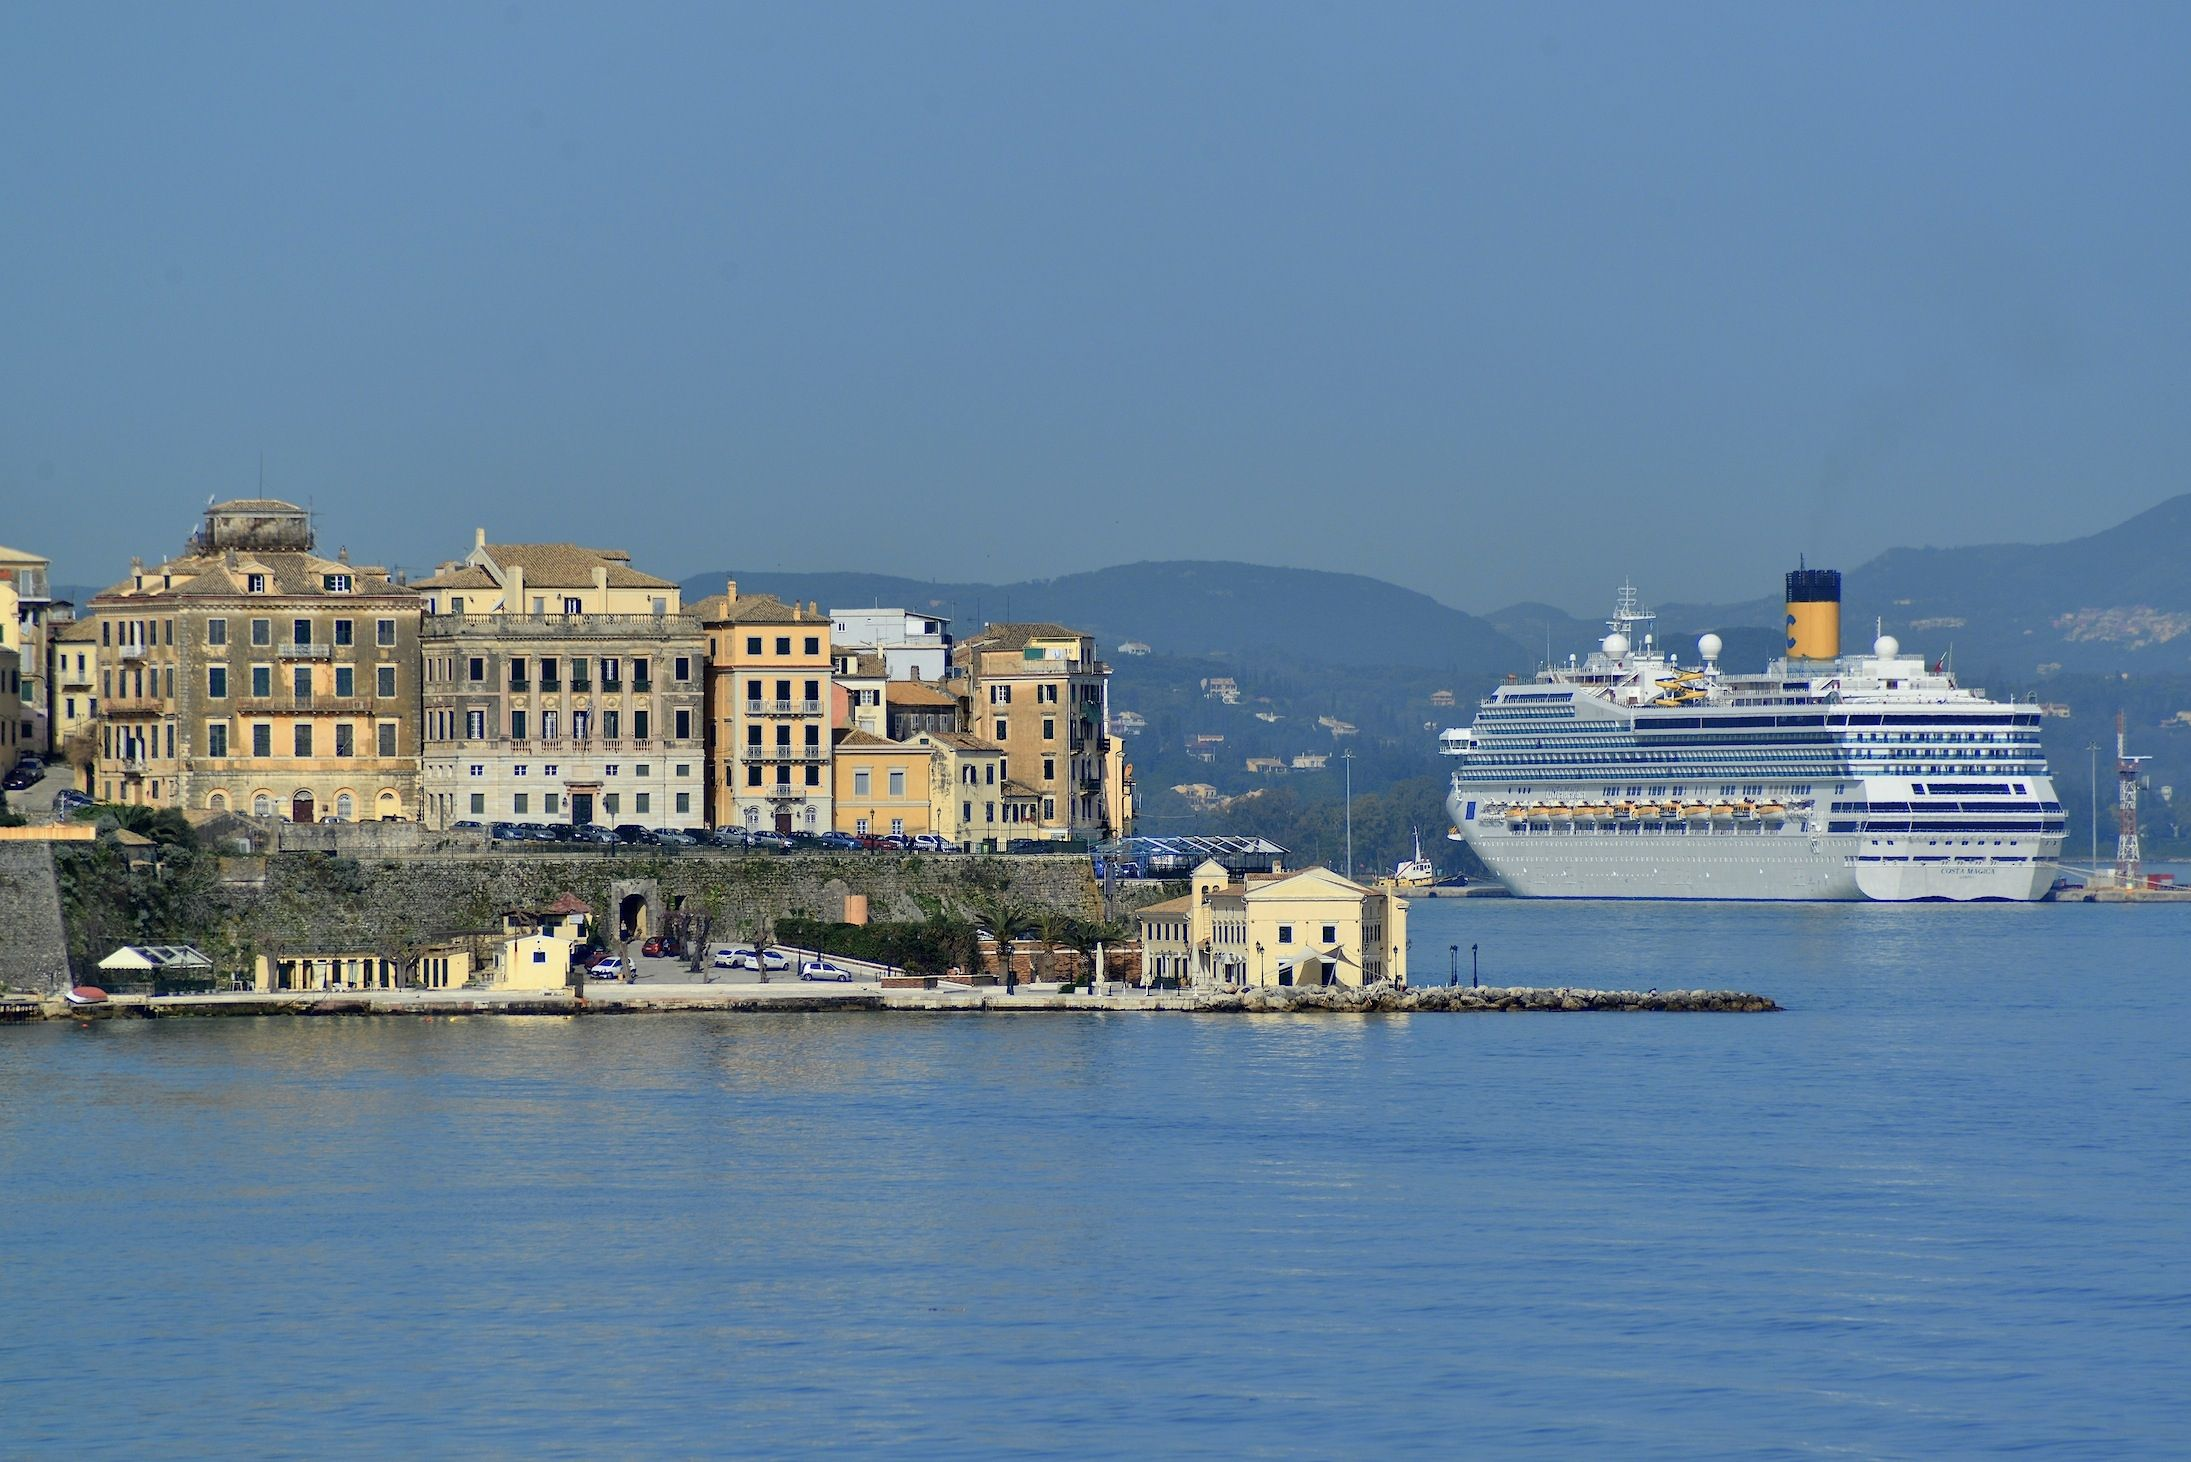 Cruises many not recommence until August or September - or even 2021!